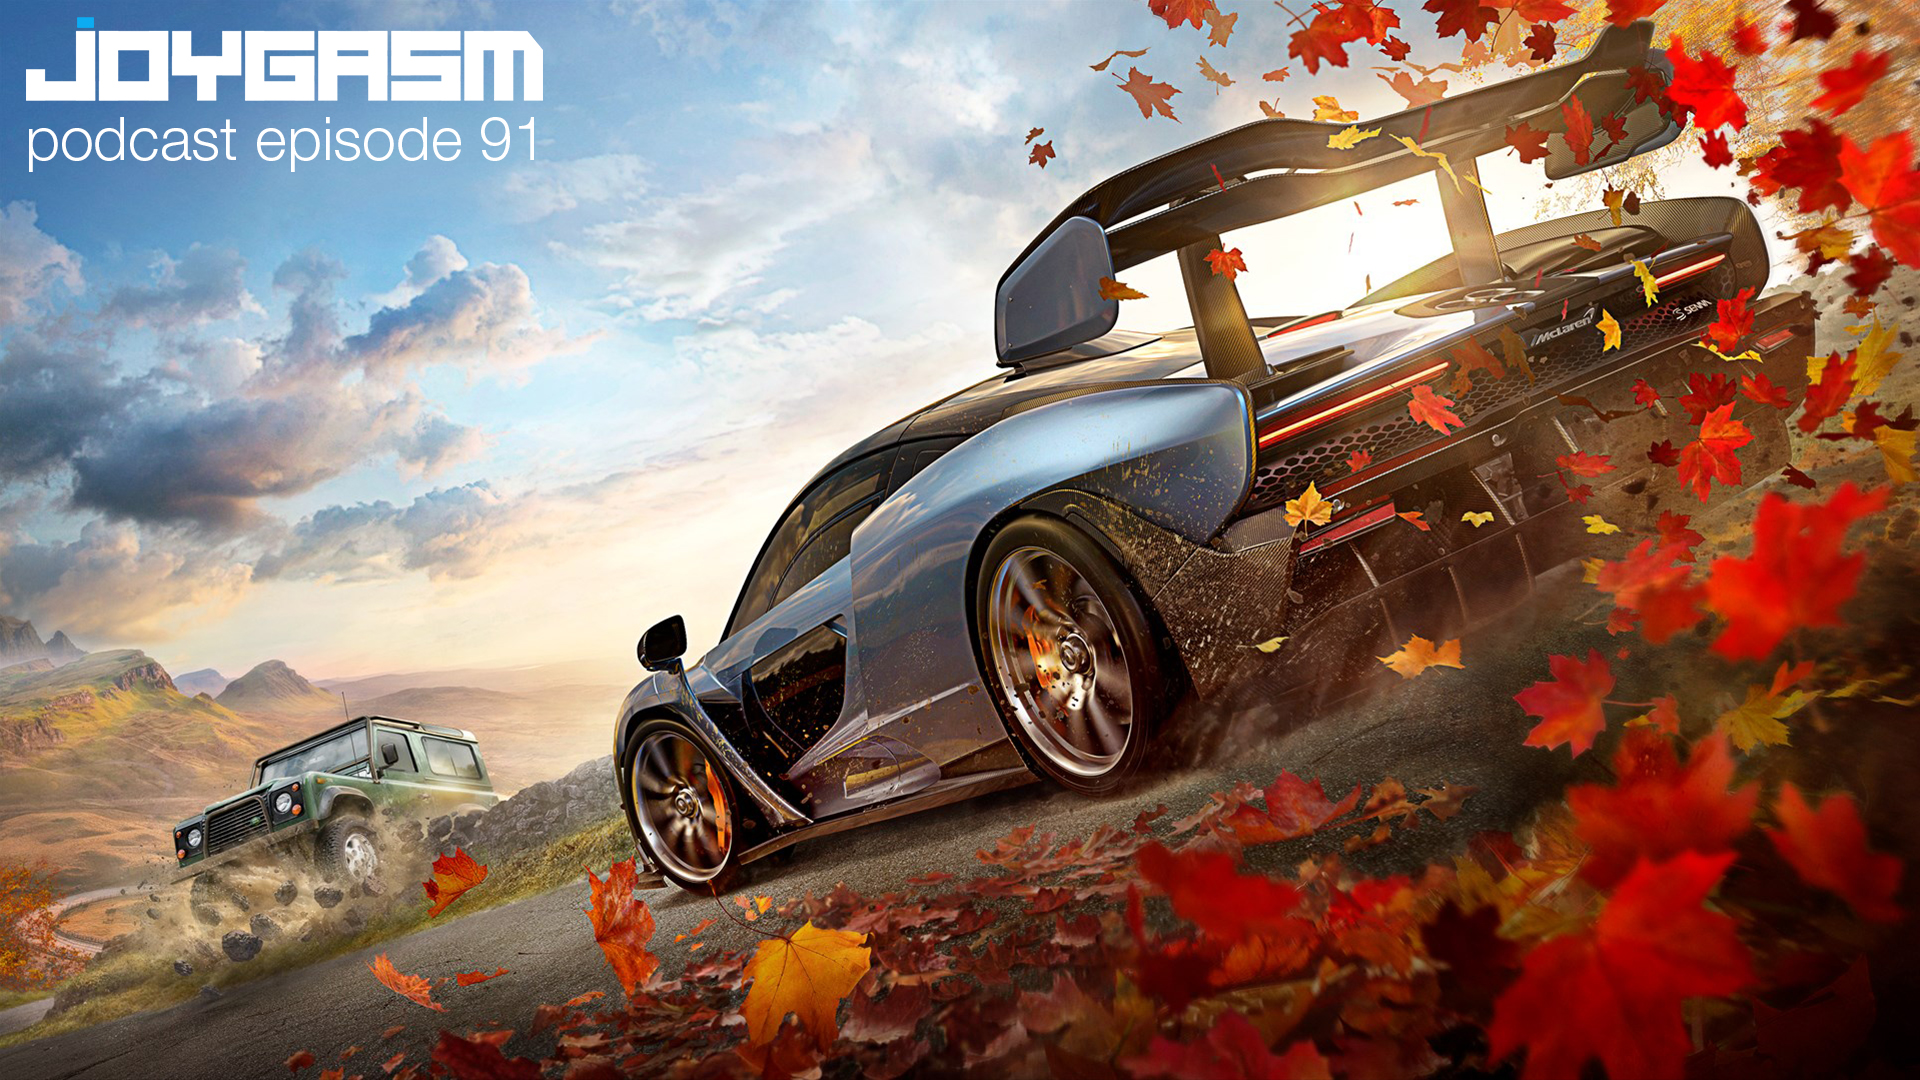 Ep. 91: Forza Horizon 4 Impressions, Glass & Vice Trailer Reactions & More